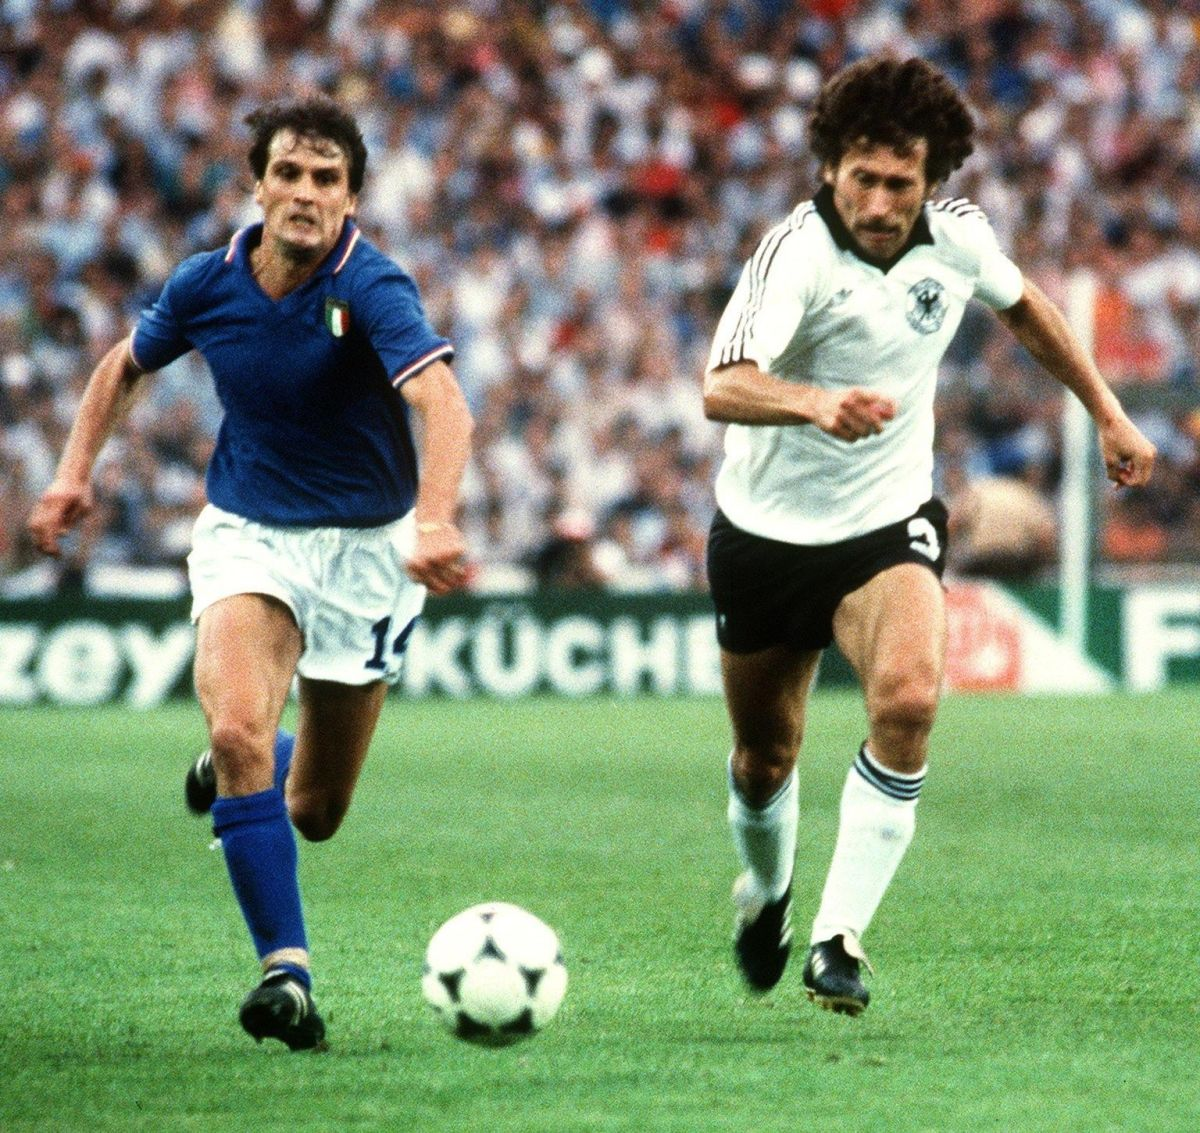 world-cup-1982-italy-west-germany-5b1046d8f7b09d0d08000018.jpg